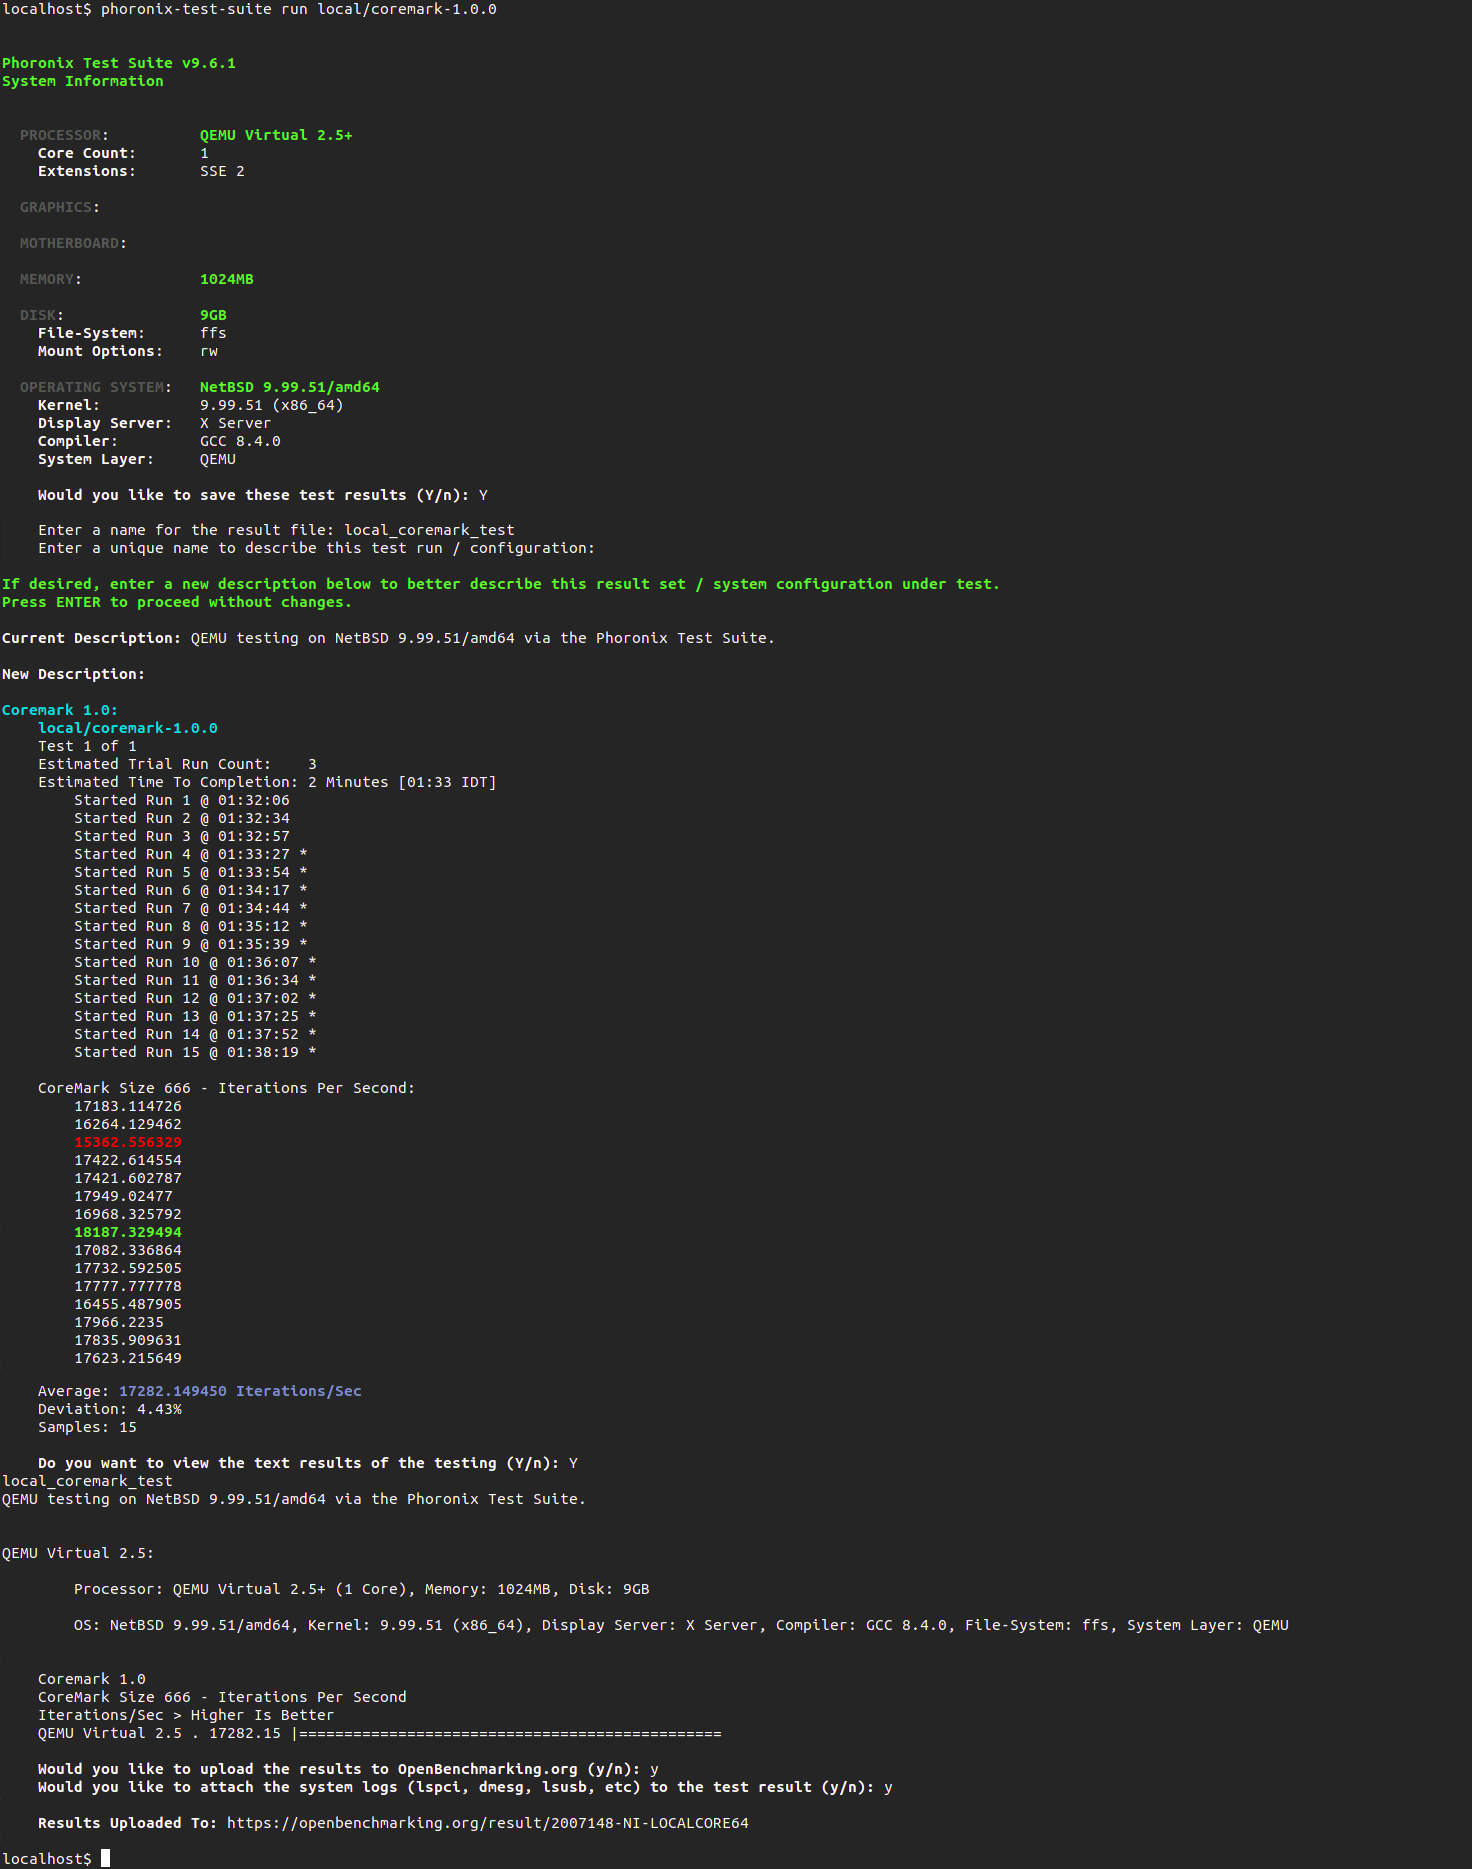 Screenshot of patched coremark PTS test-profile results